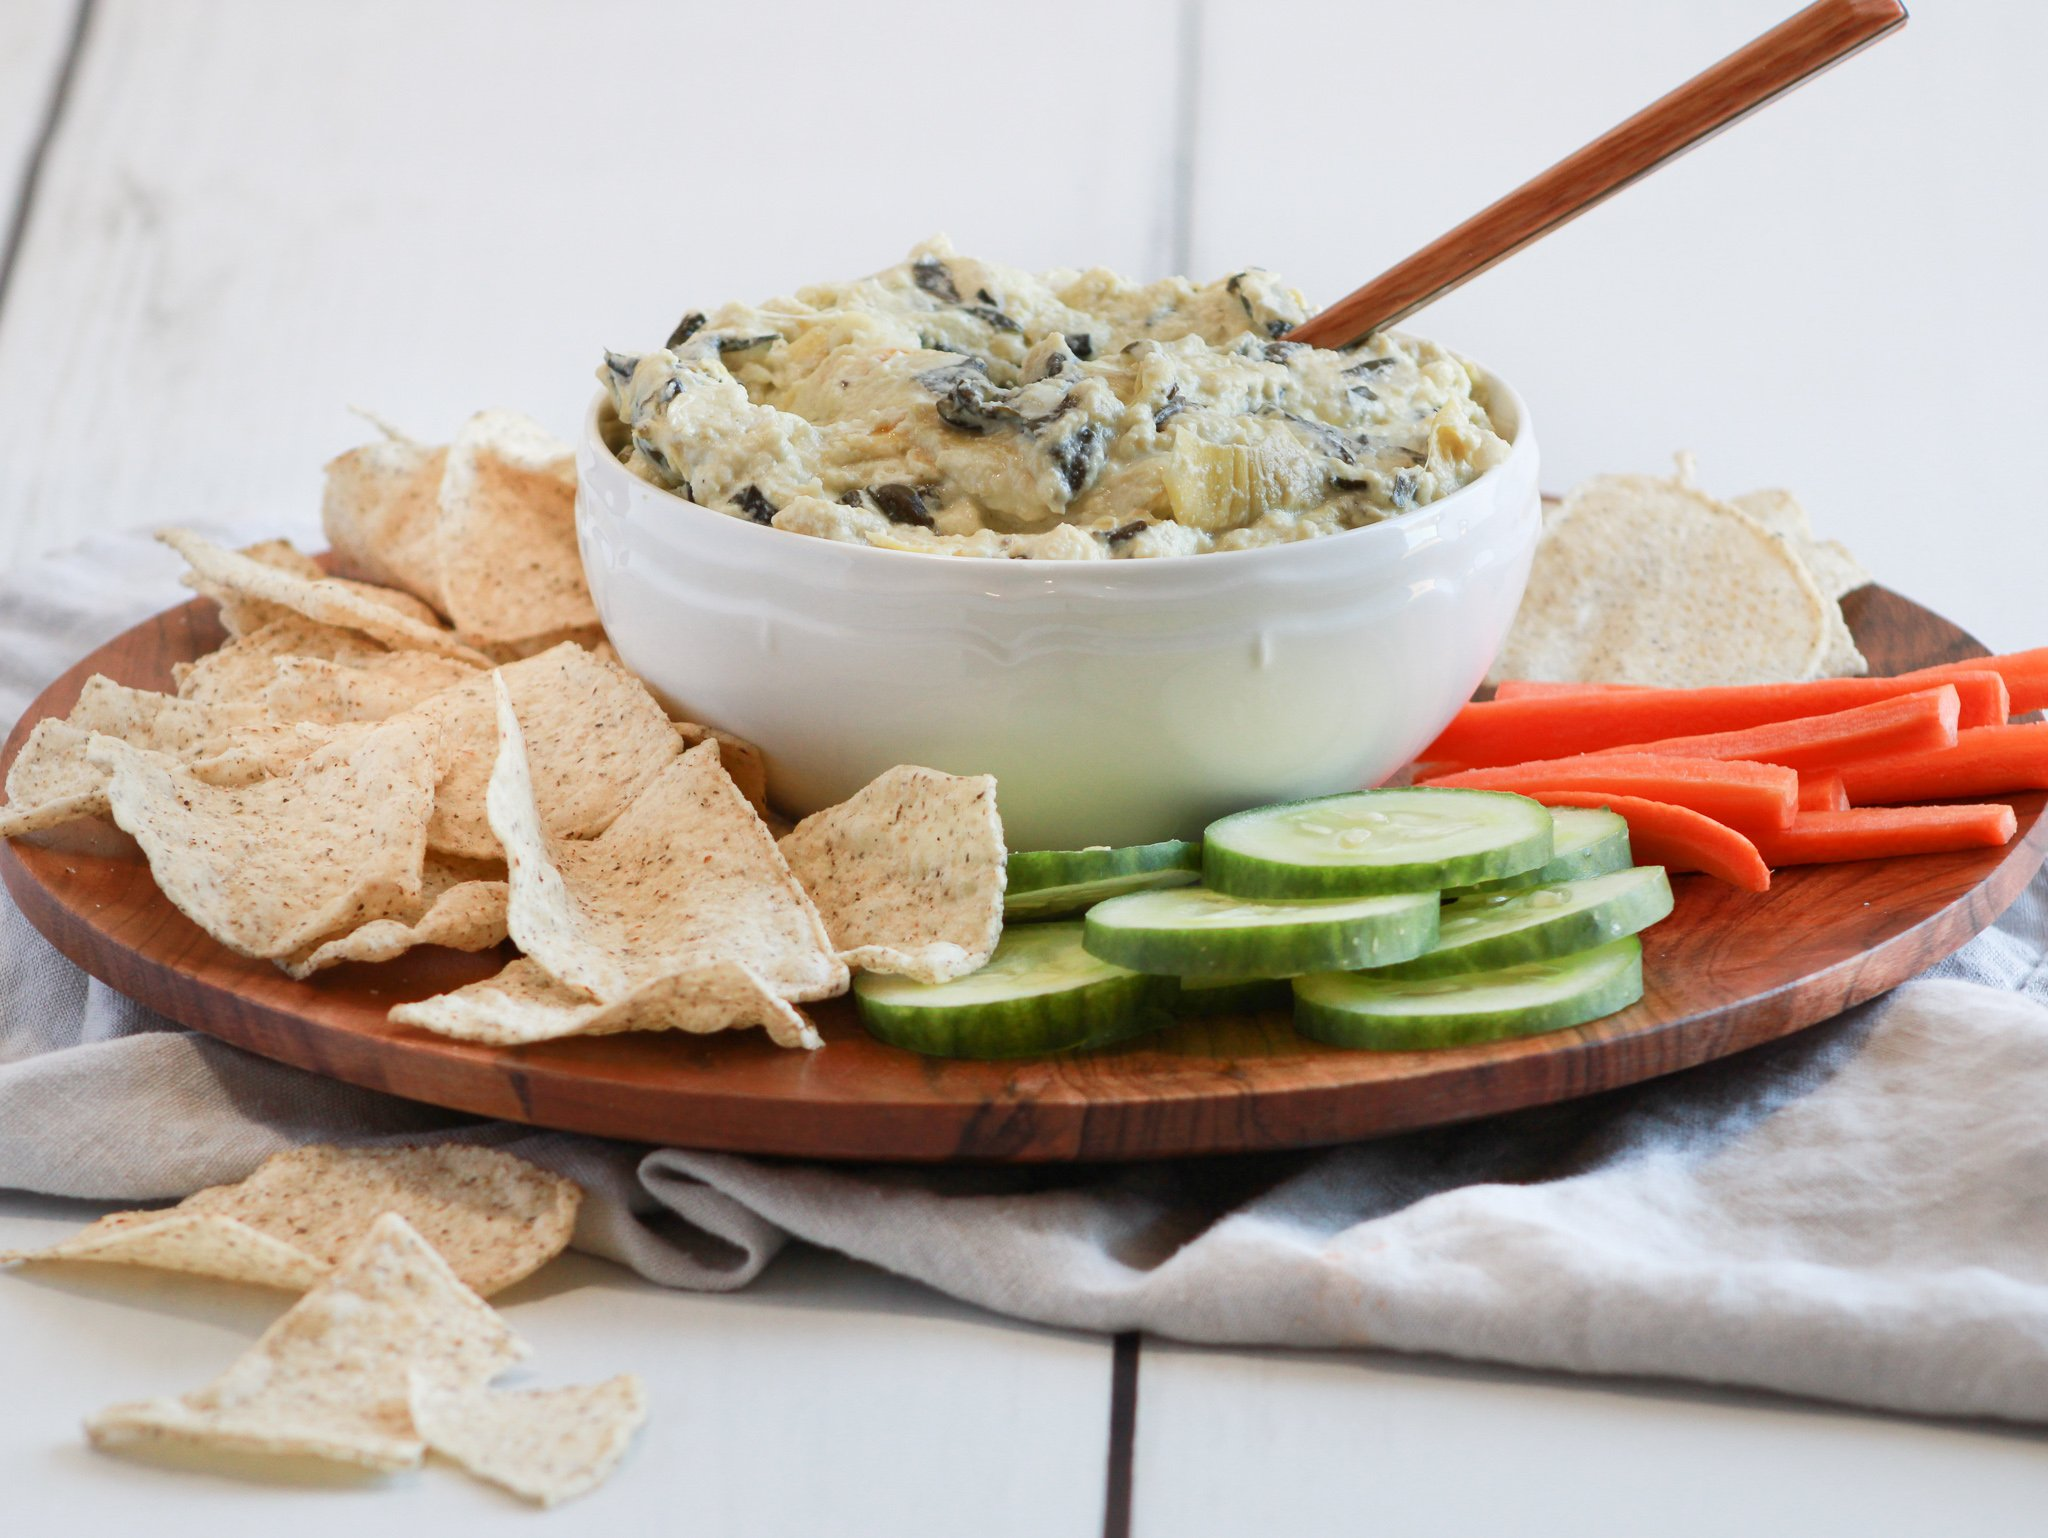 Spinach and artichoke dip in a white bowl with a wooden spoon ready to be scooped on to a chip or cucumber slice and eaten.